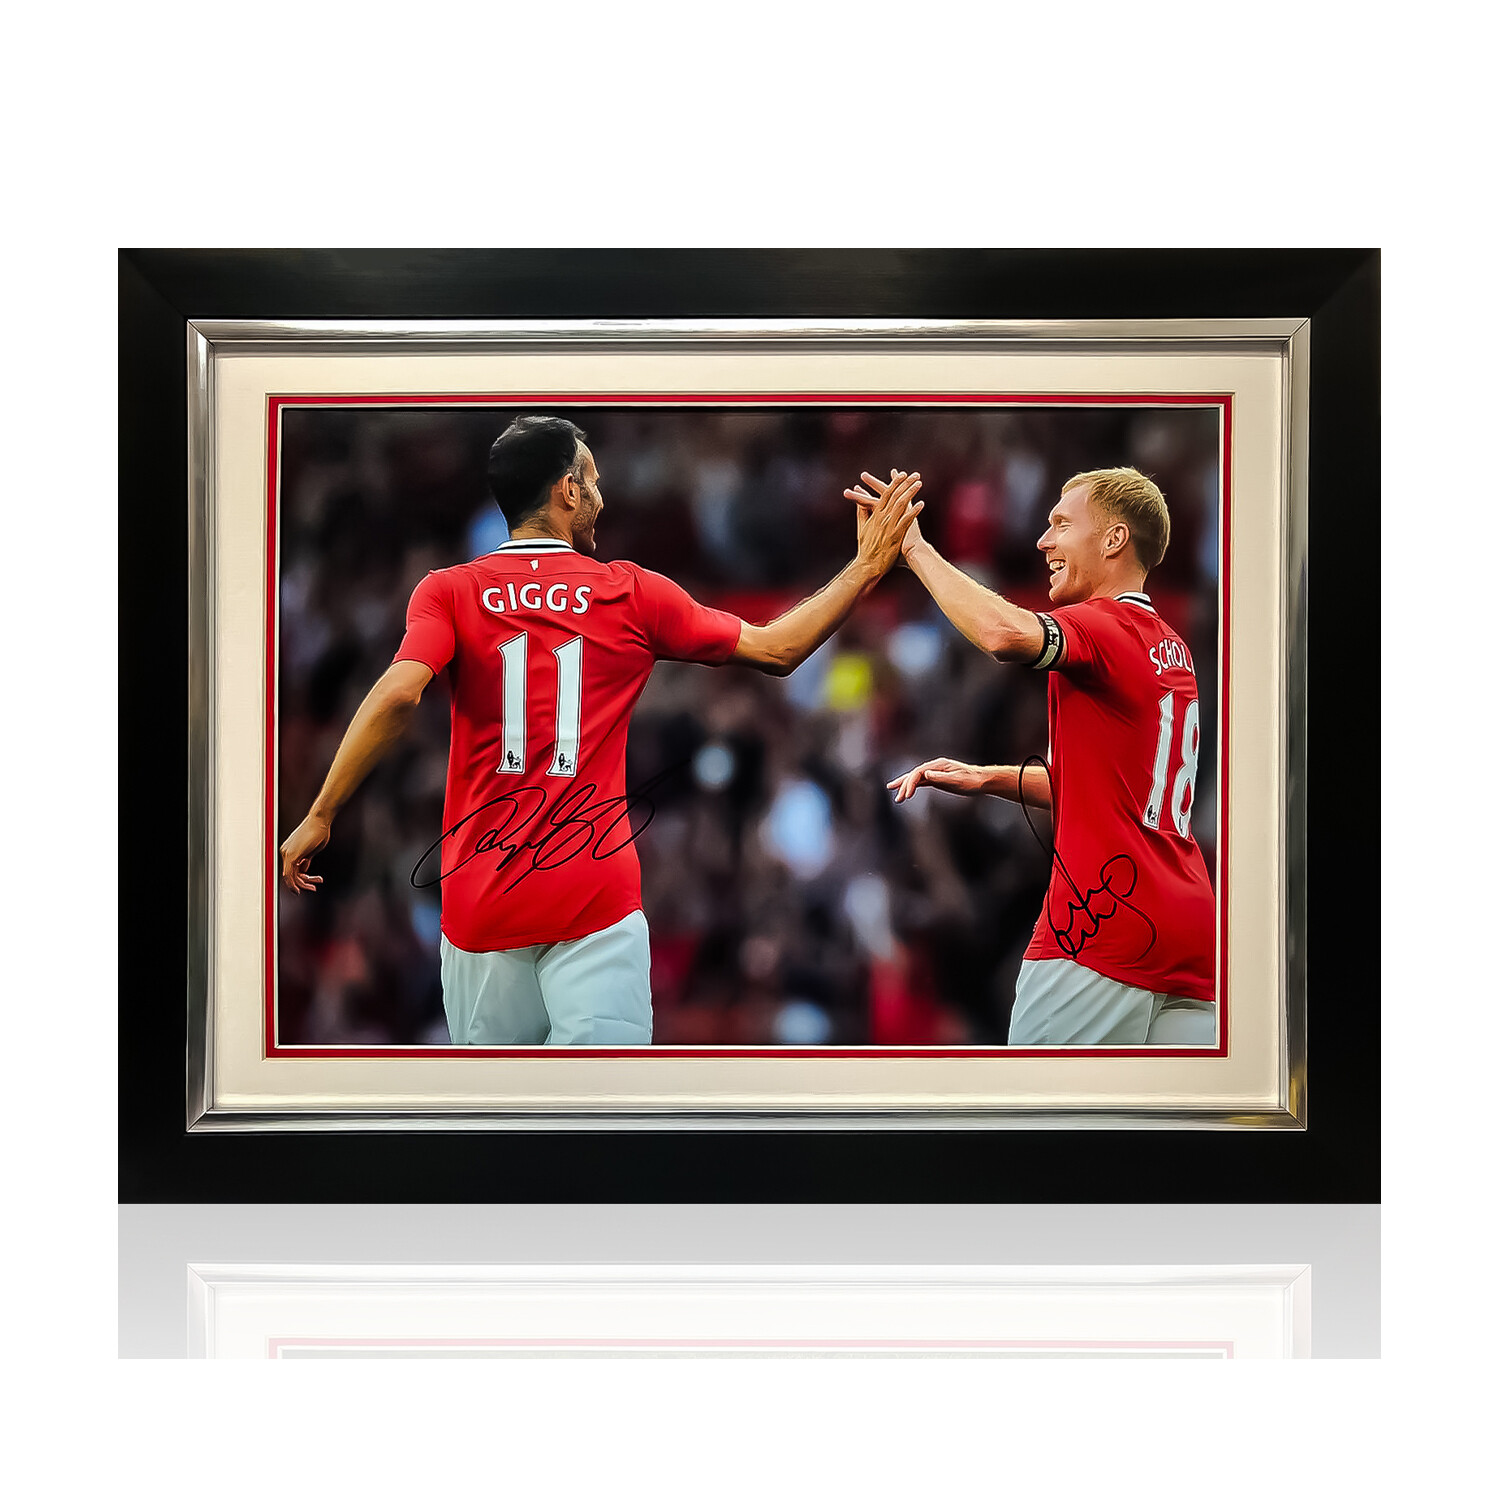 Giggs and Scholes Signed & Framed Print